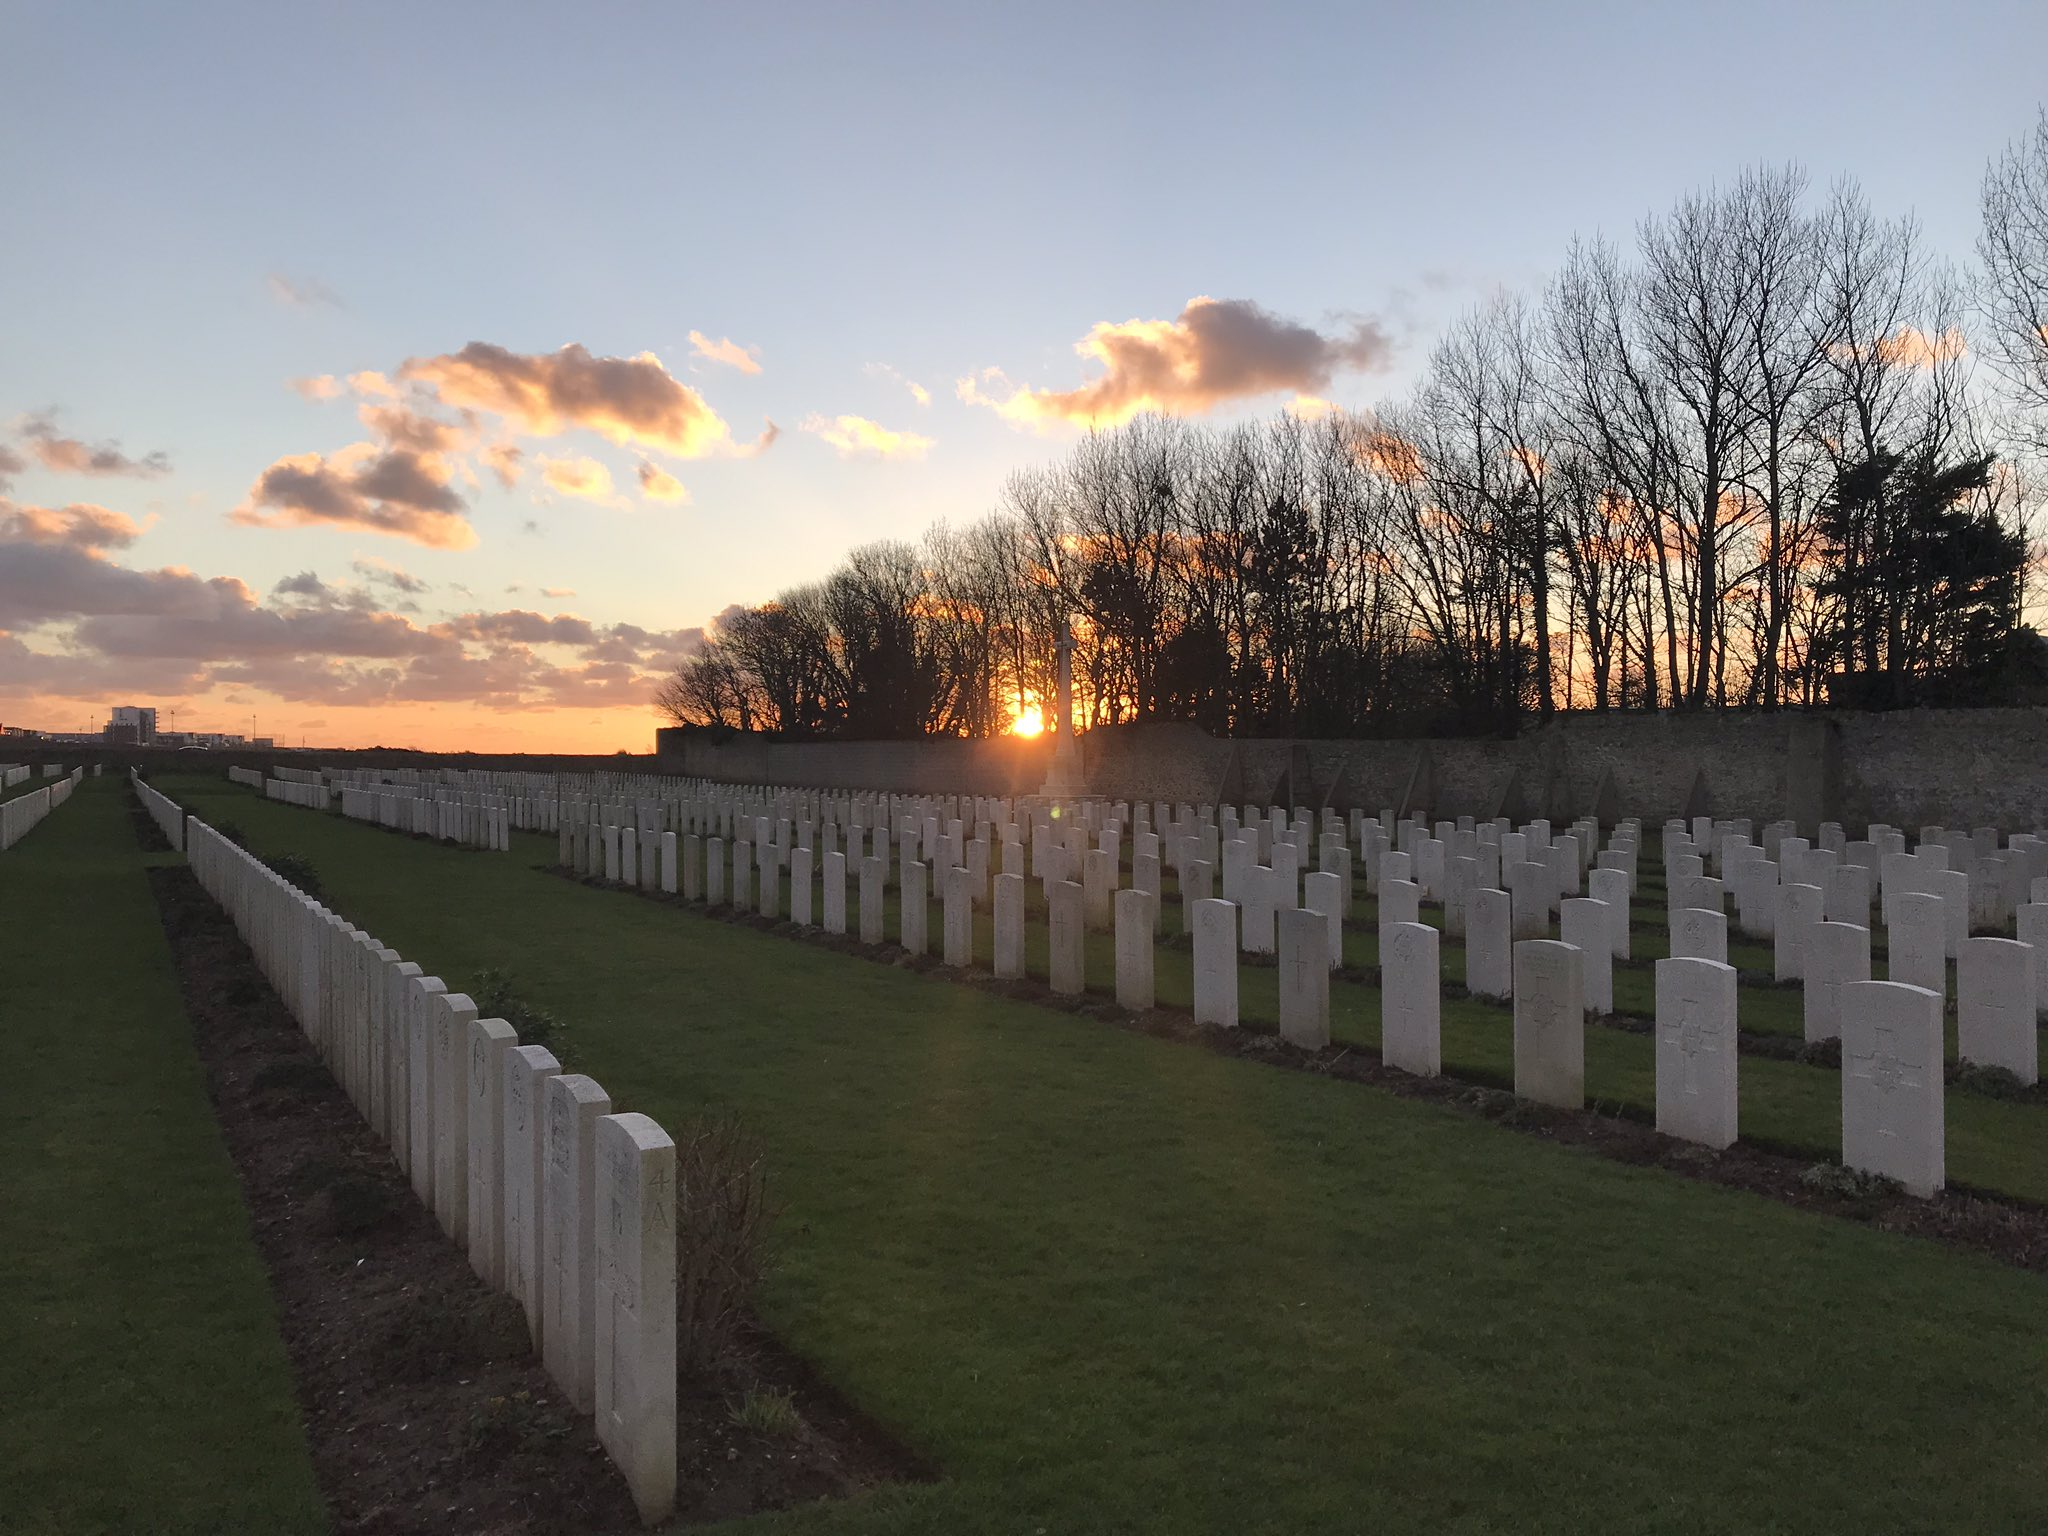 Terlincthun British Cemetery (3) at sunset today. #WW1 #PasdeCalais https://t.co/qK1i0xNbCh